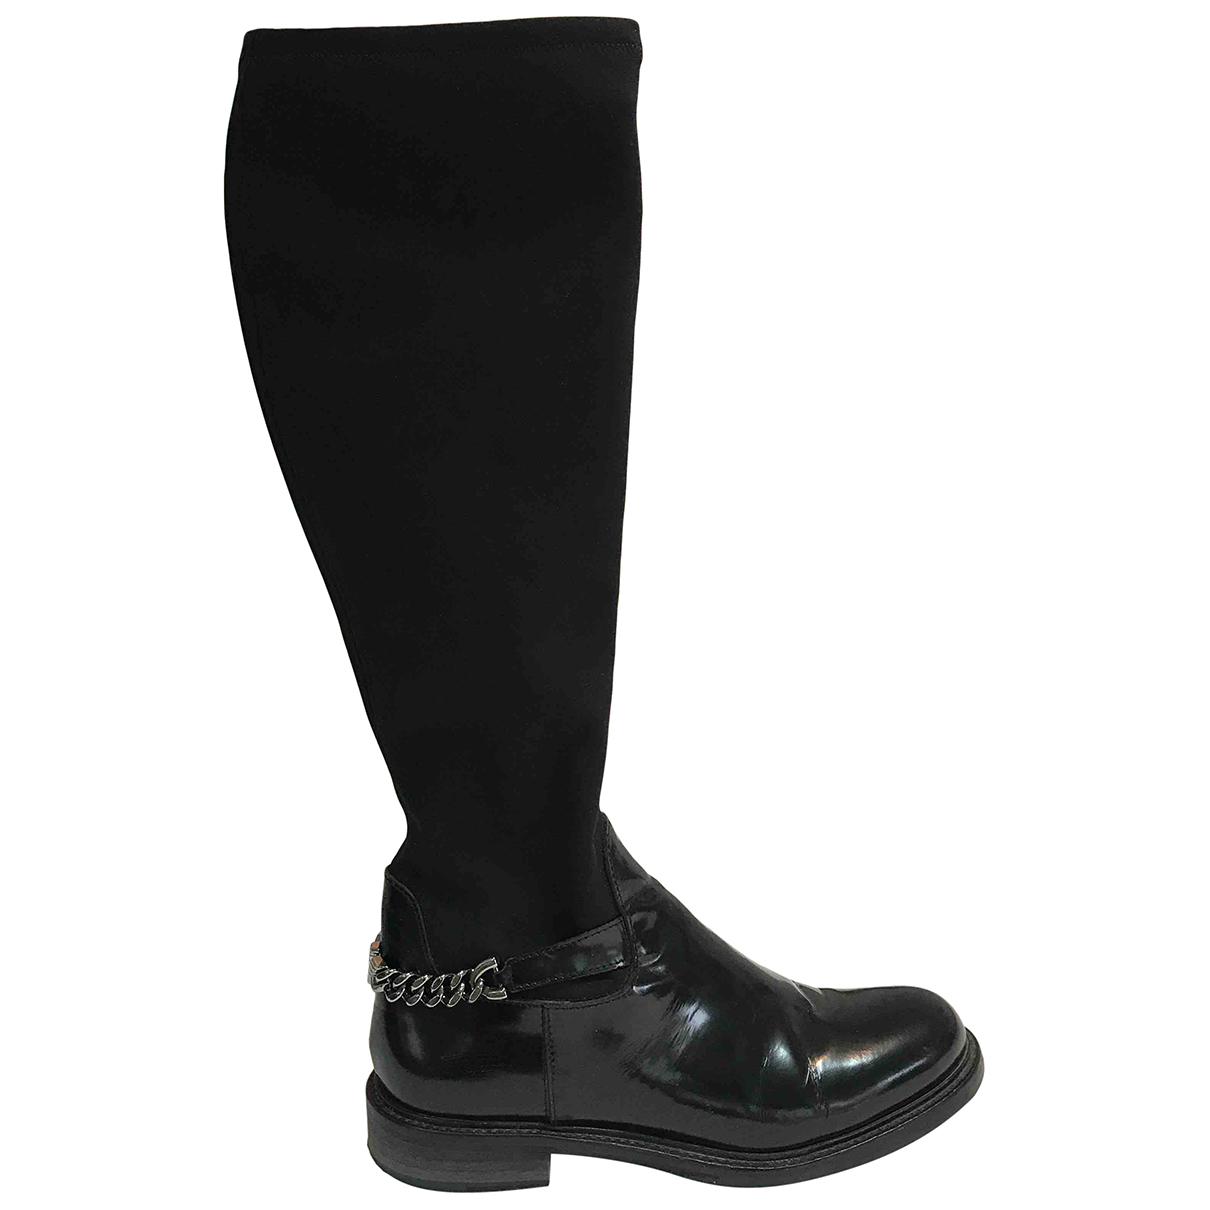 Emporio Armani N Black Leather Boots for Women 37.5 EU